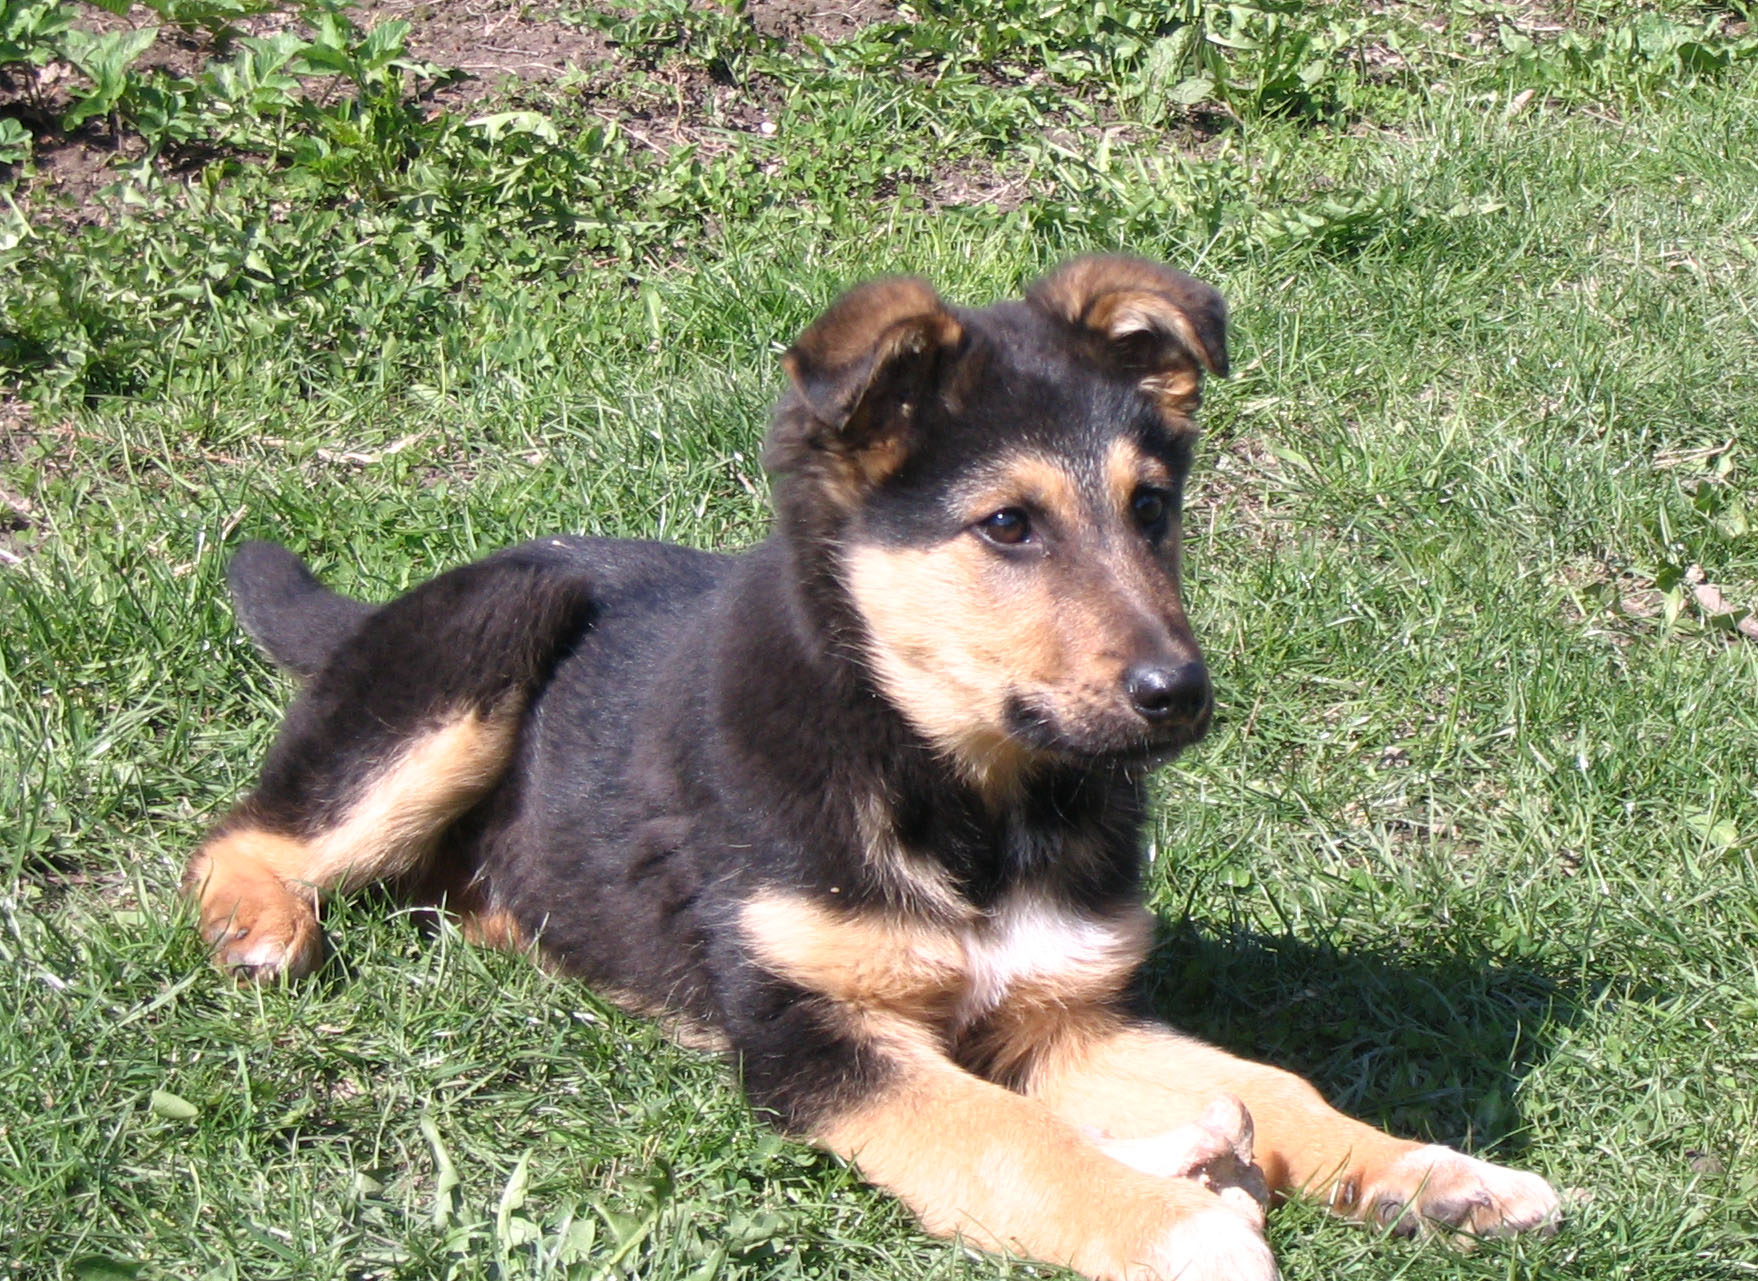 File:German shepherd puppy.jpg - Wikimedia Commons